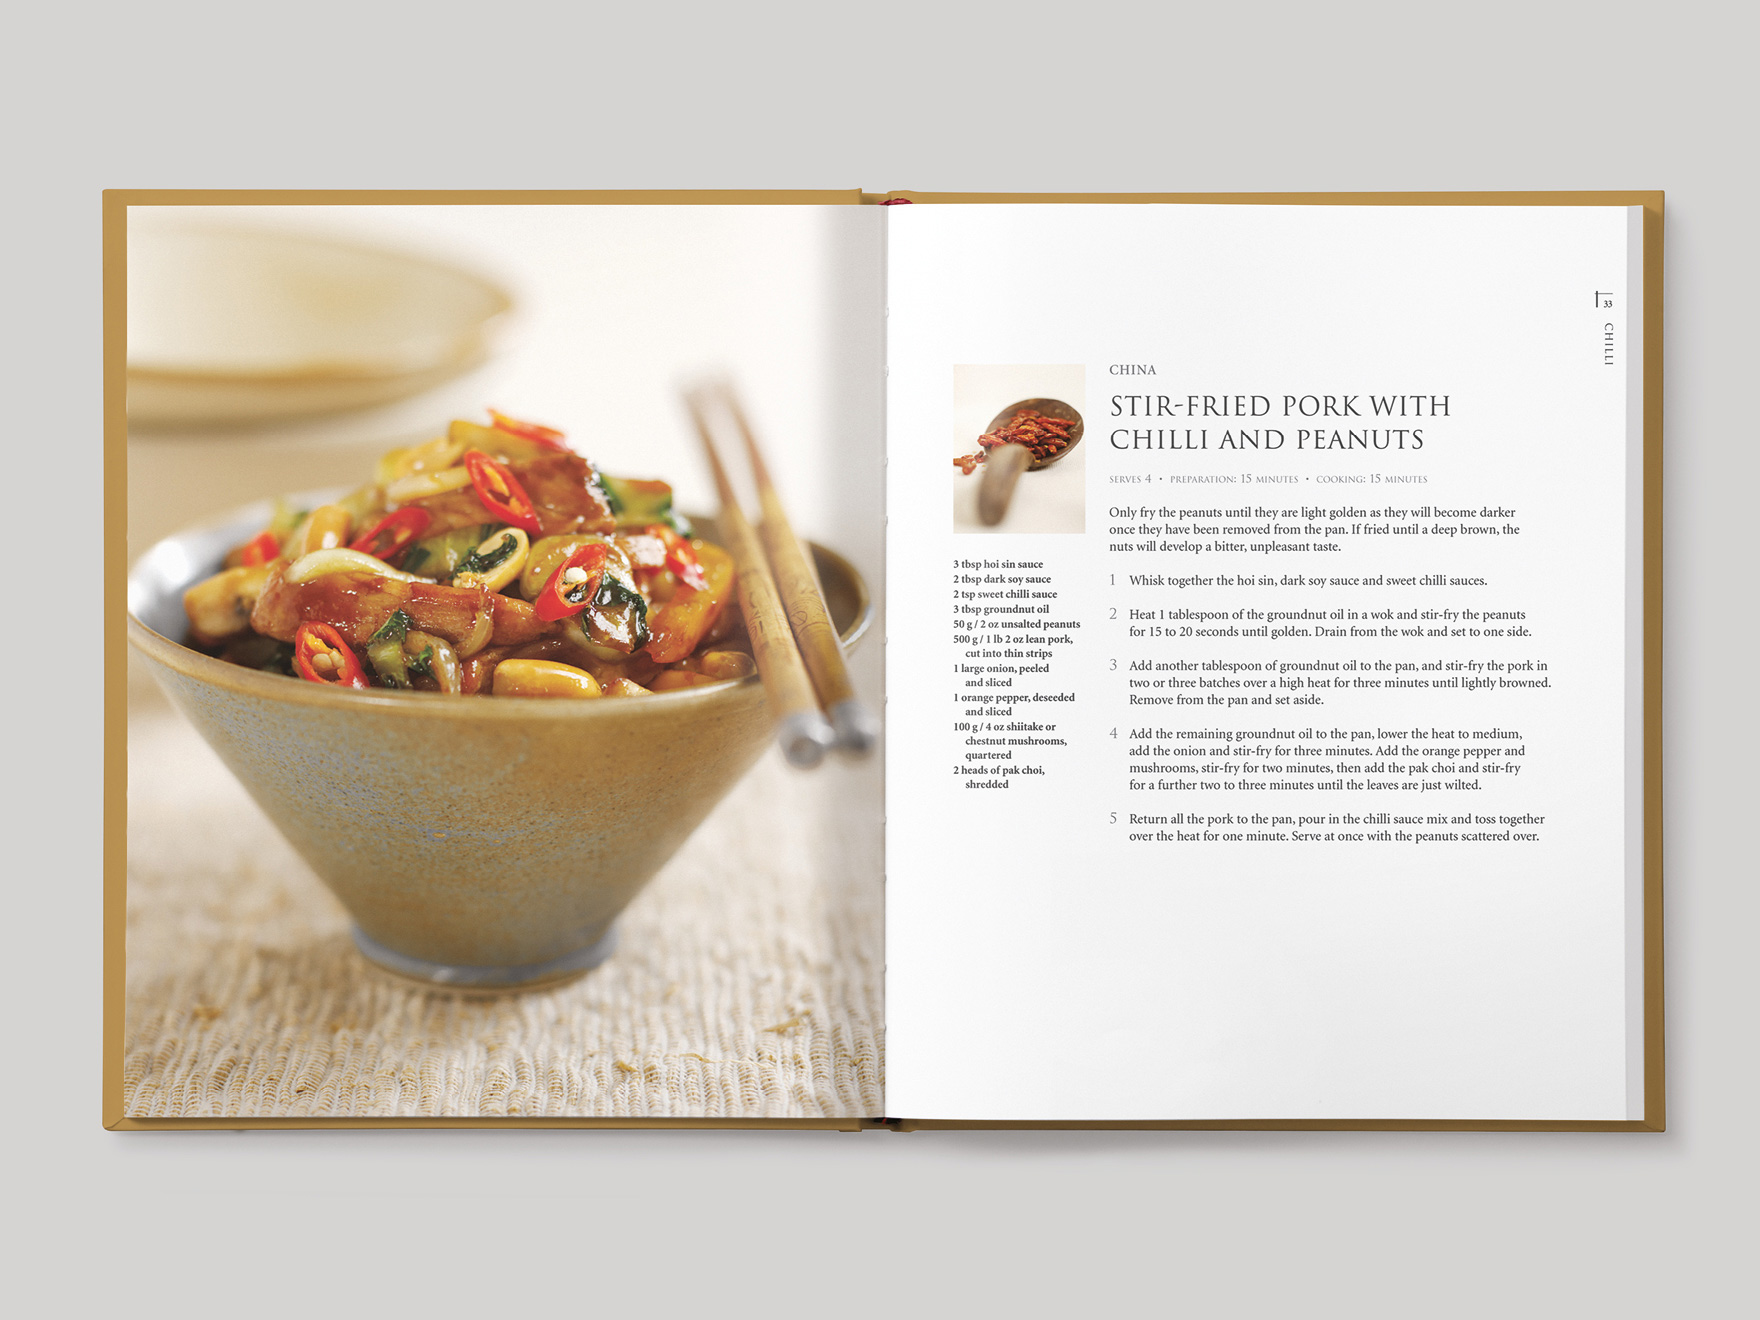 Inside book pages from Asian Flavours showing a recipe for stir-fried pork with chilli and peanuts